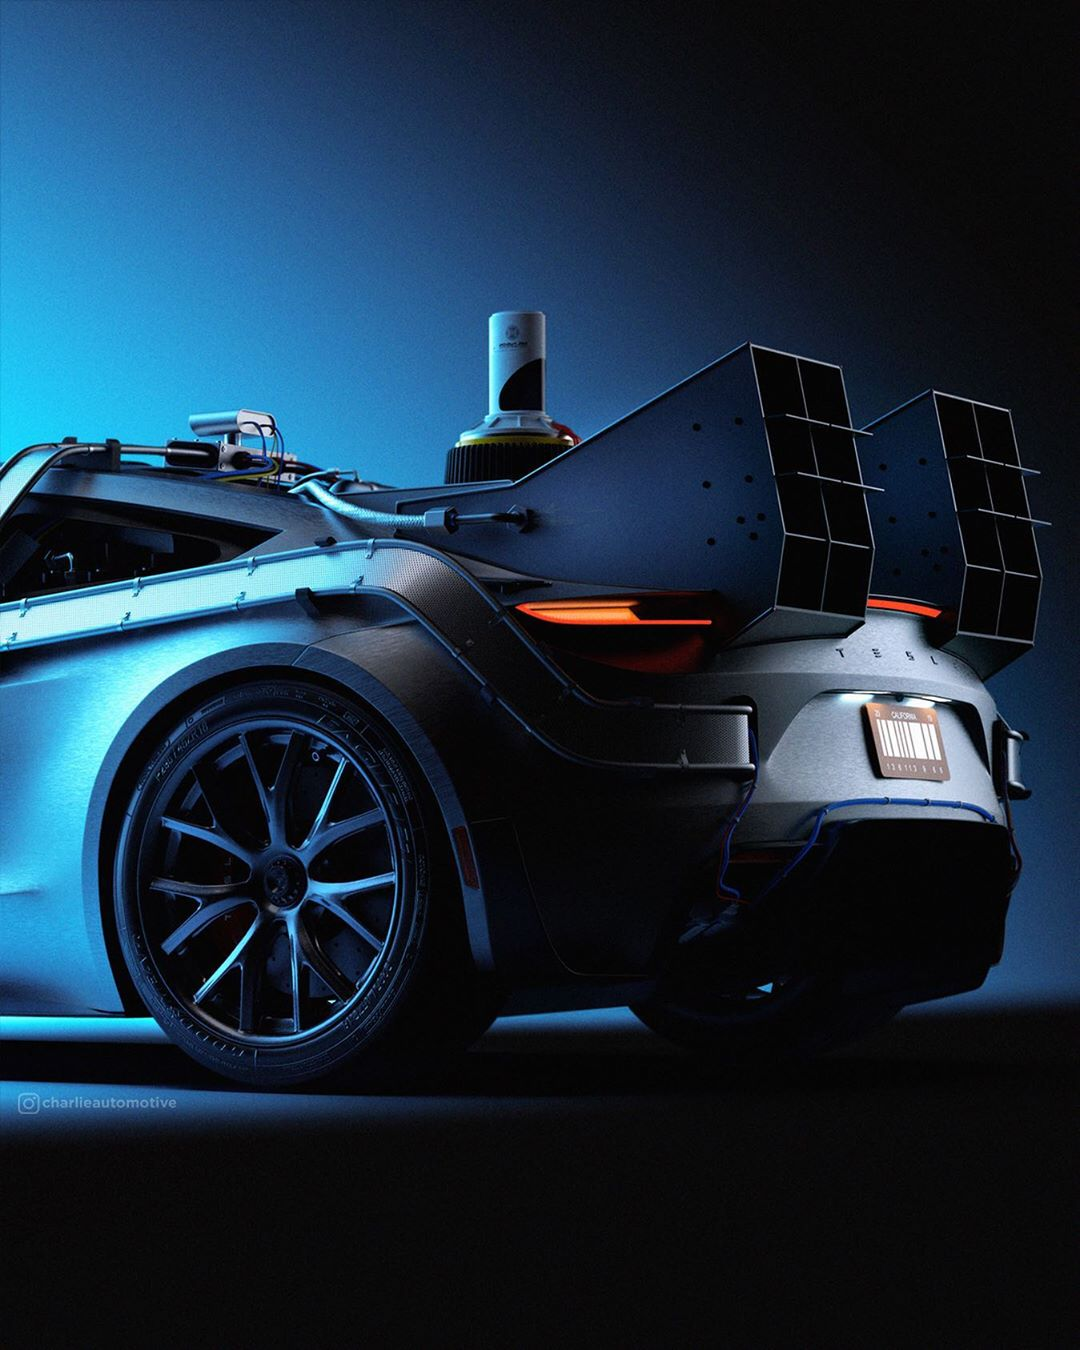 roadster-back-to-the-future-2